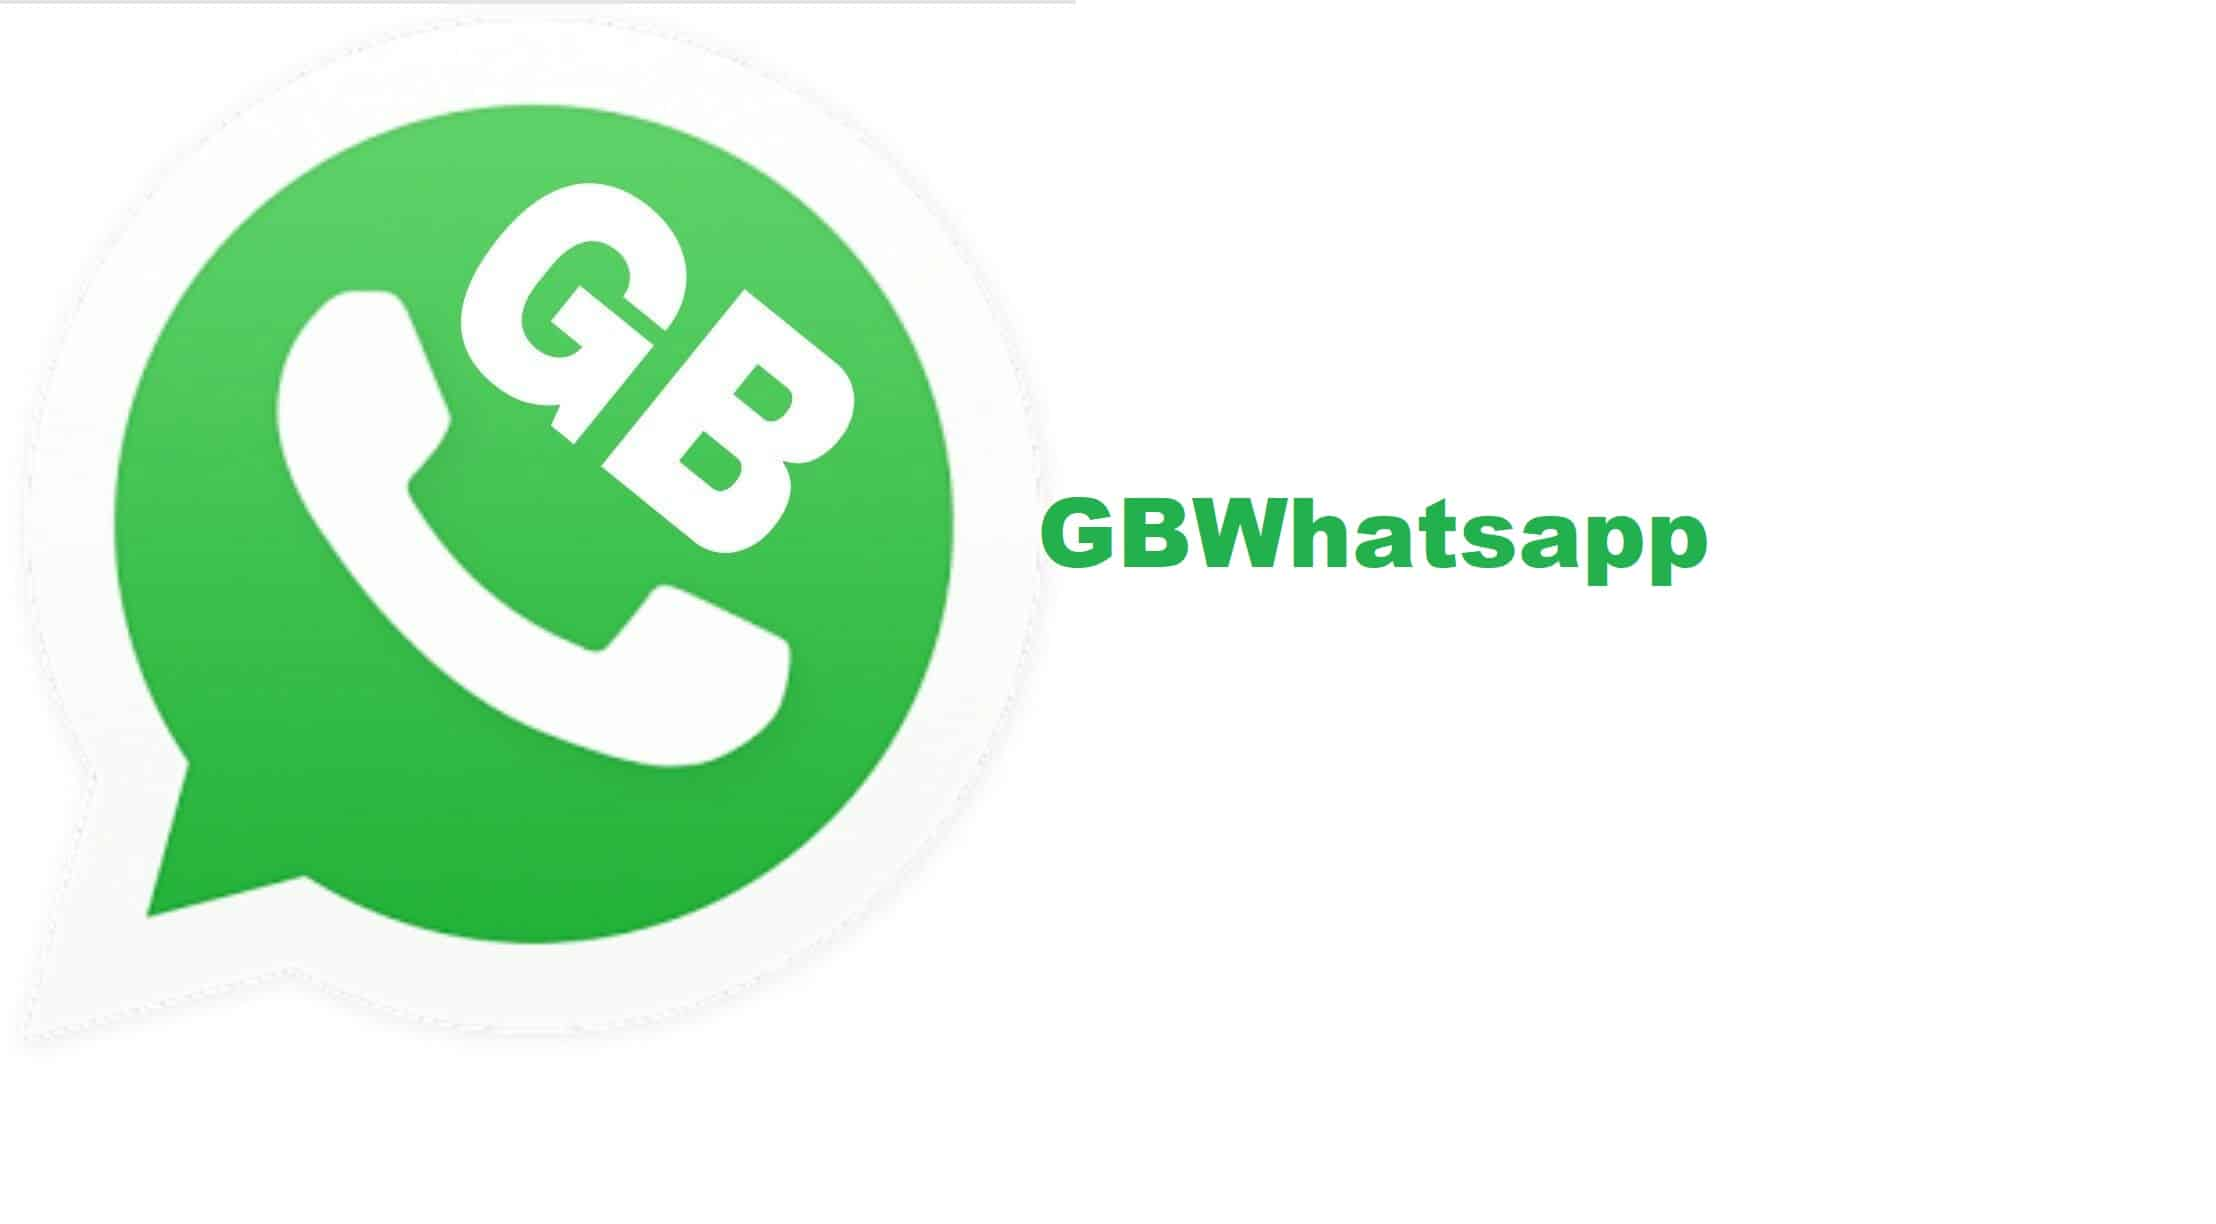 Download-GB-WhatsApp-Heymods-Terbaru-2021